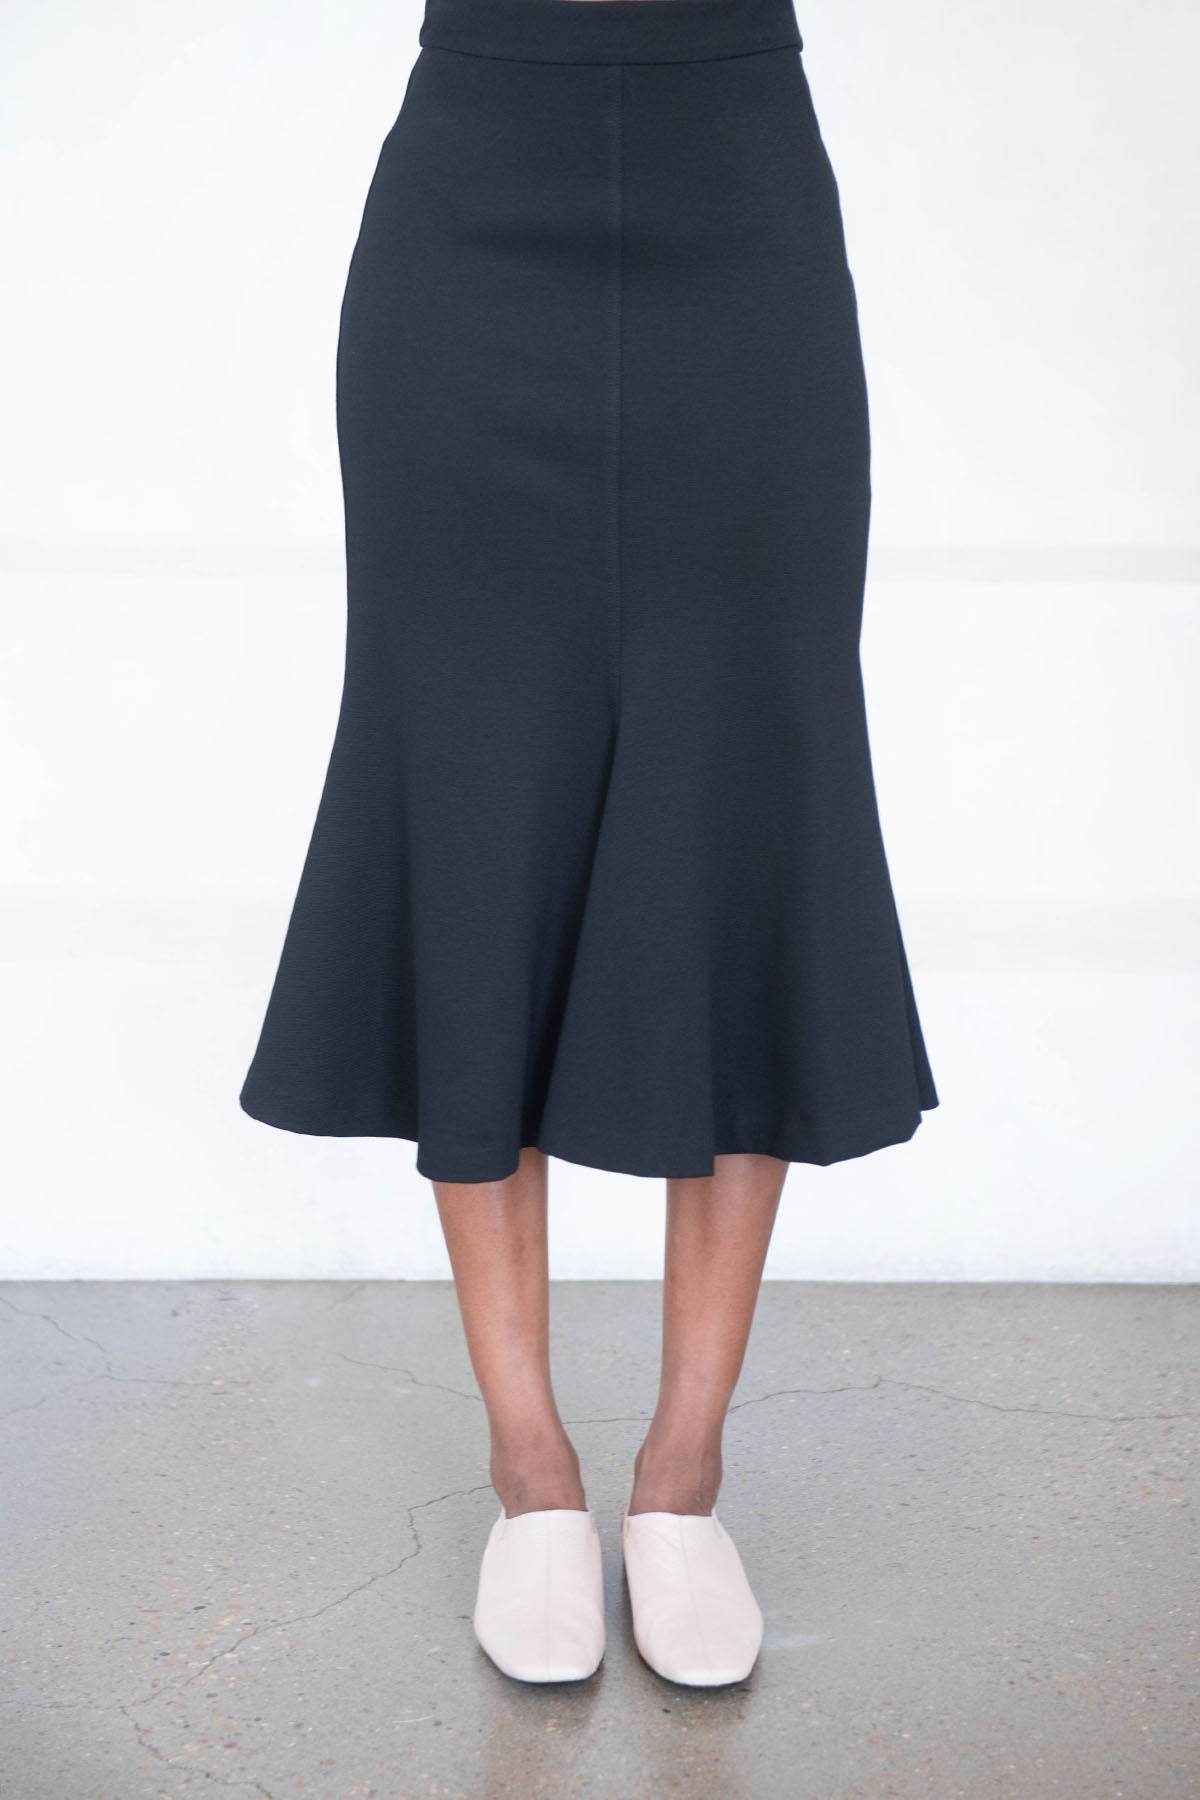 ROSETTA GETTY - fluted skirt, black